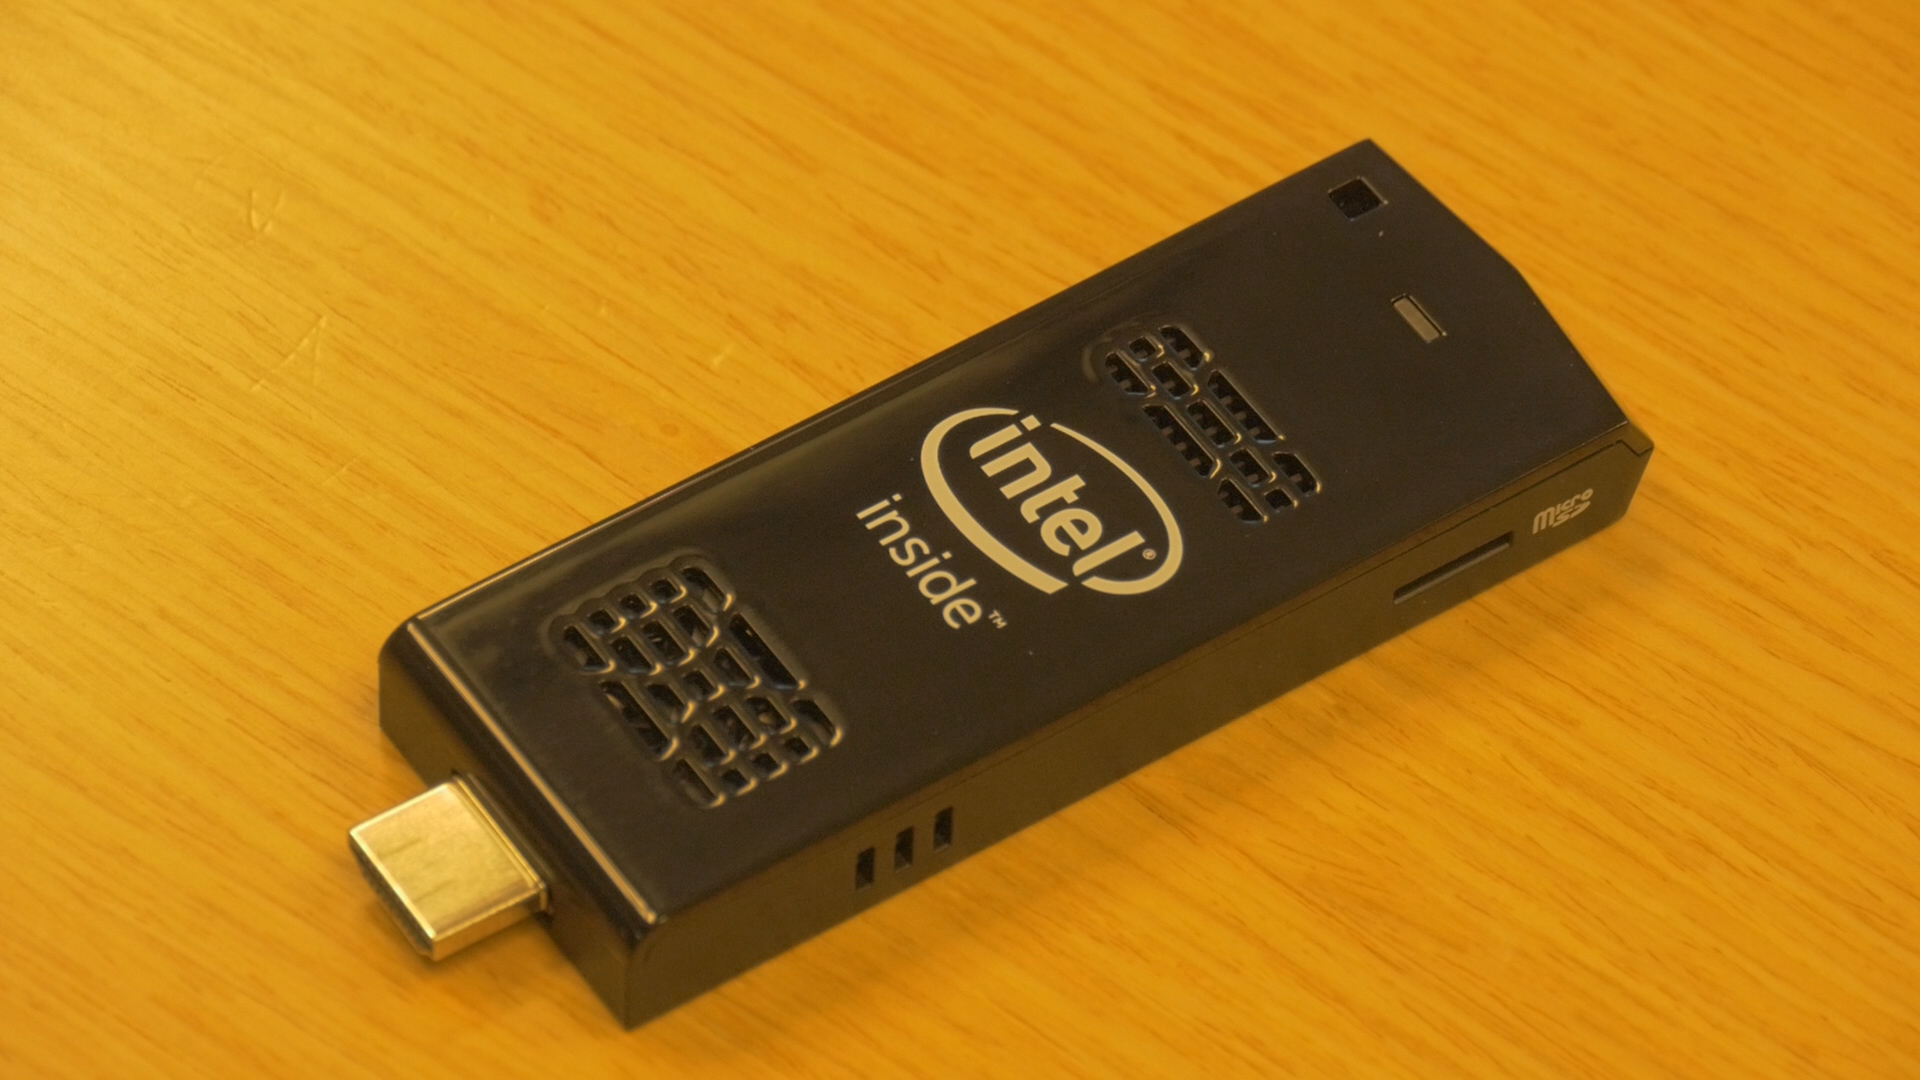 A pocket compter? The Intel Compute Stick